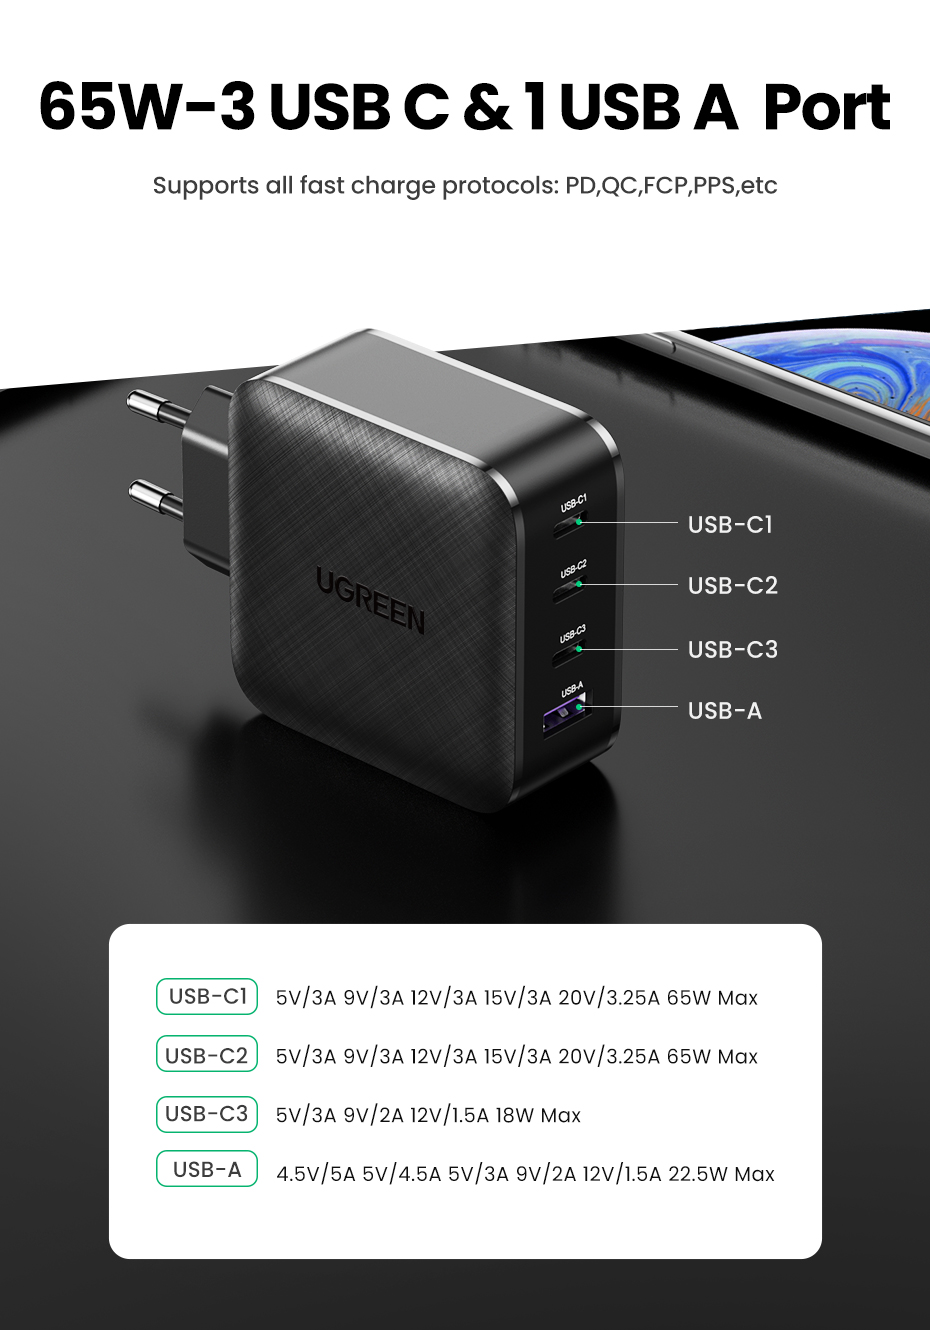 Ugreen 65W GaN Charger Quick Charge 4.0 3.0 Type C PD USB Charger with QC 4.0 3.0 Portable Fast Charger for iPhone Xiaomi Laptop